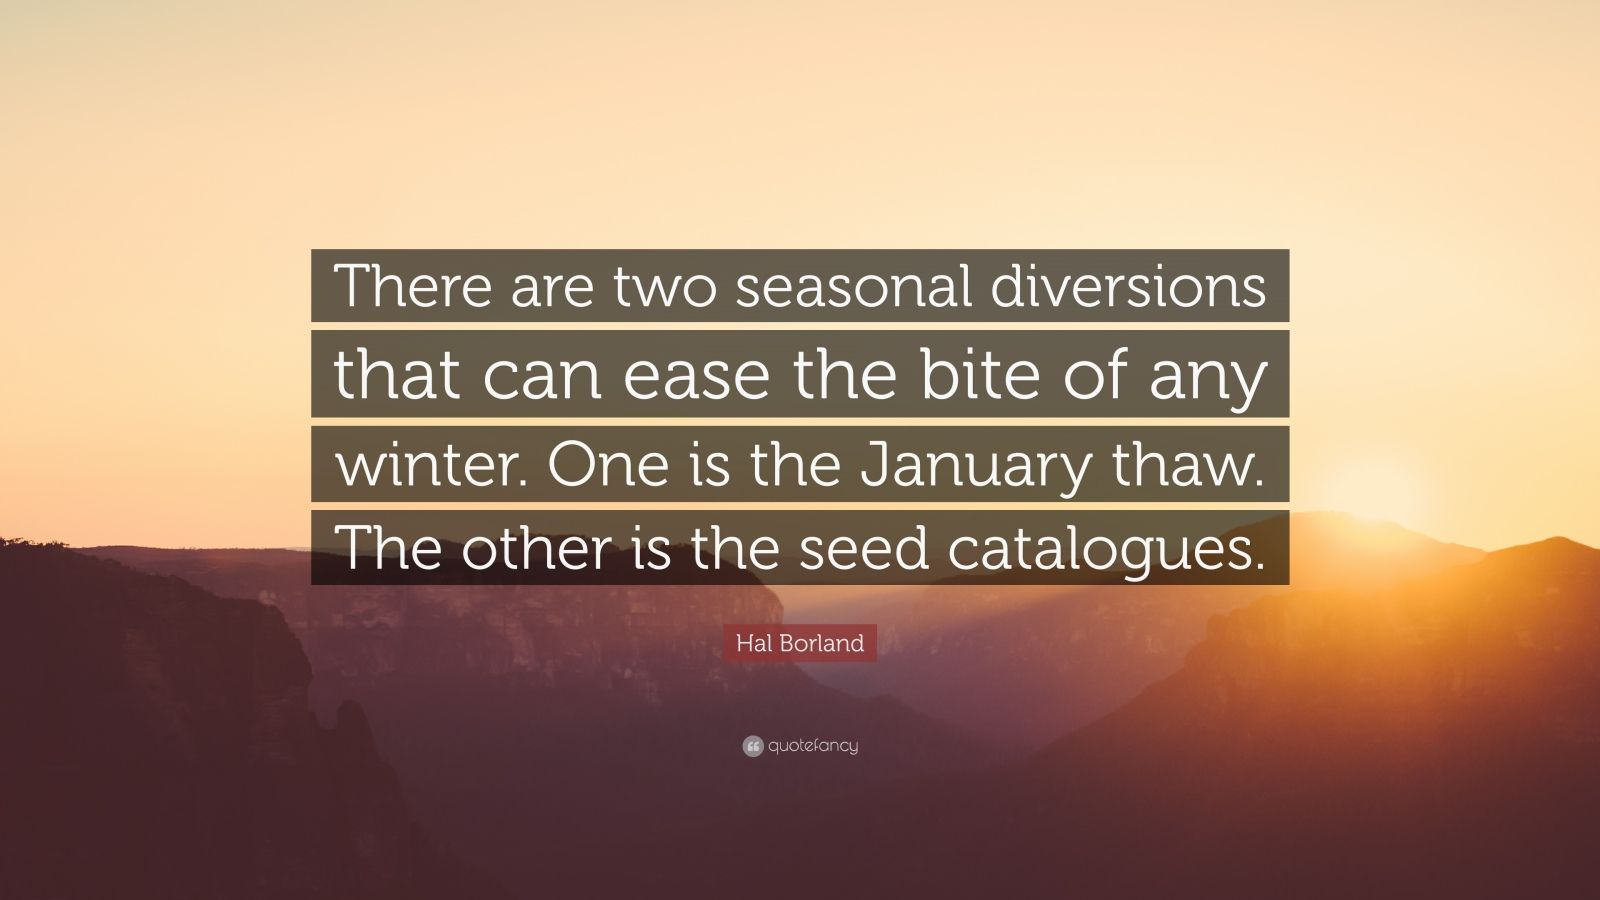 """Hal Borland Quote: """"There are two seasonal diversions that can ease the bite of any winter. One is the January thaw. The other is the seed catalogues."""""""